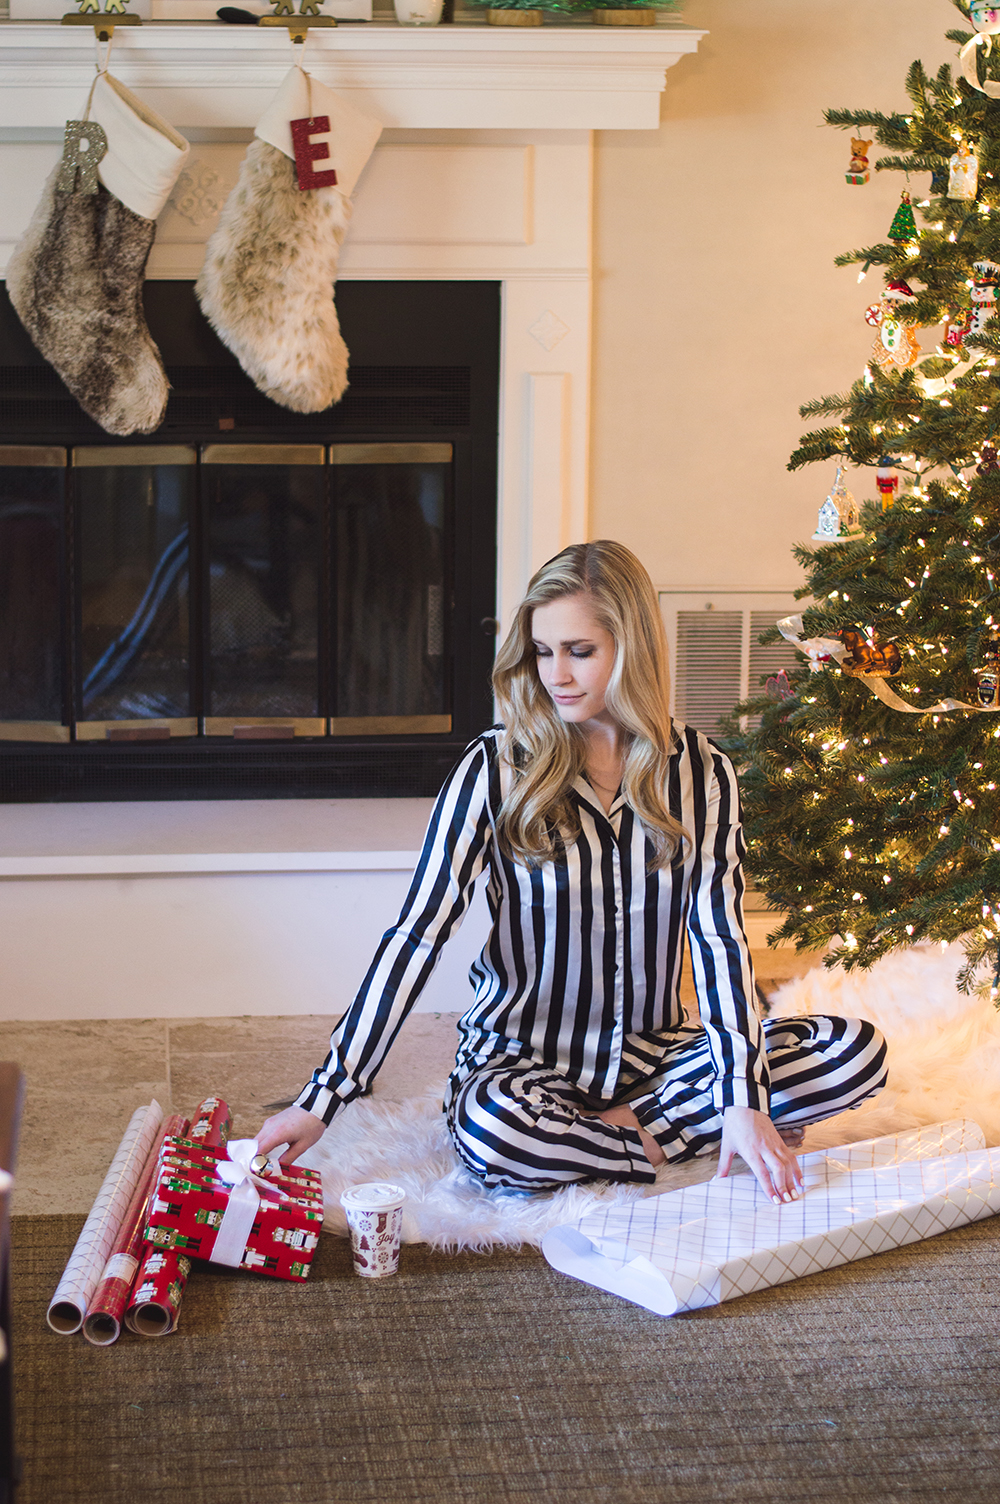 styelled-blog-fashion-blogger-style-wrapping-target-paper-christmas-gift-wrap-bows-glitter-nutcracker-tree-ornaments-stockings-pajamas-boohoo-tutorial-diy-08